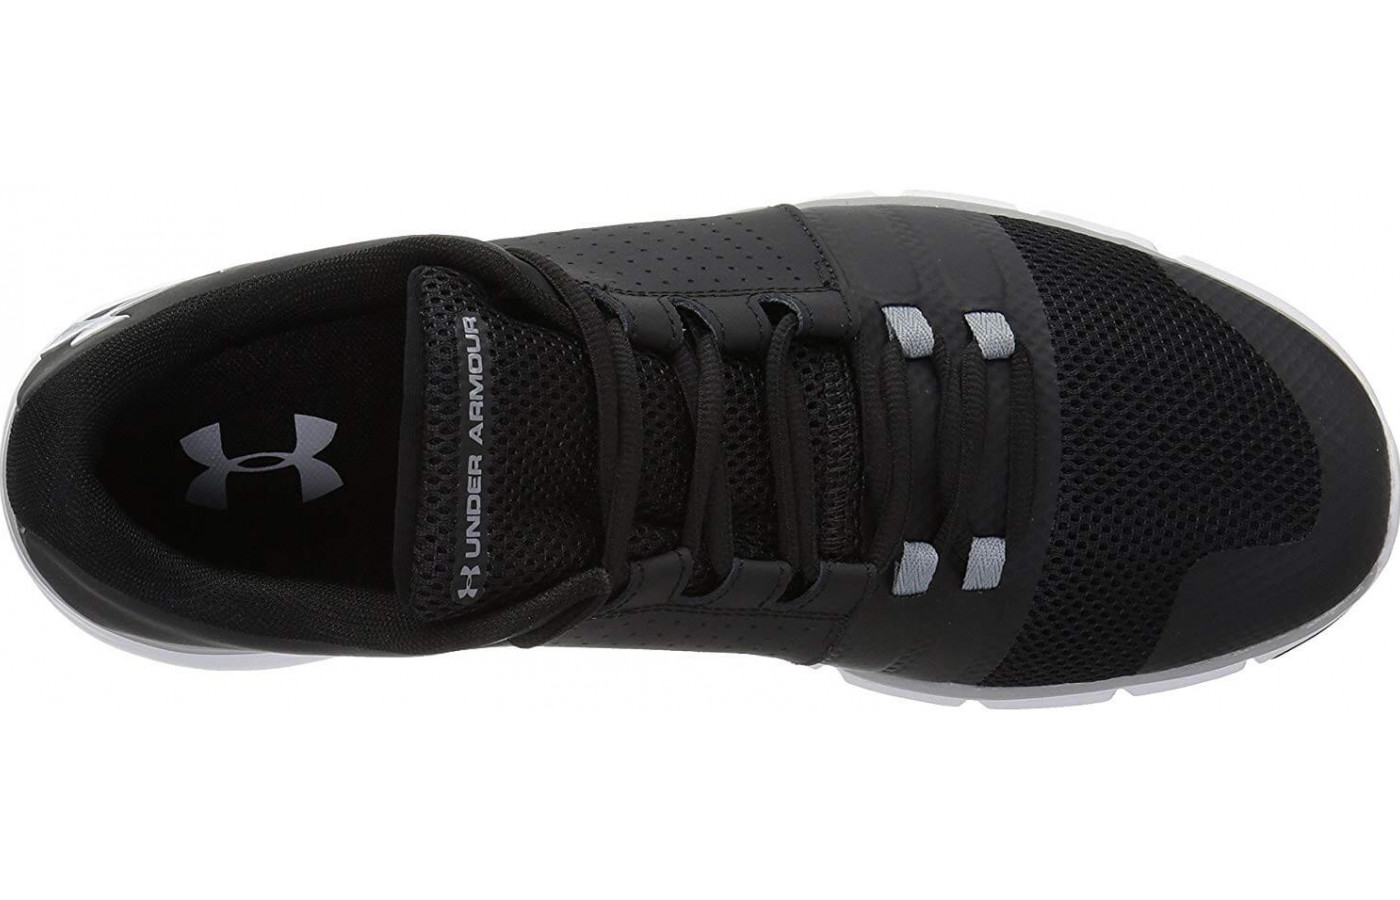 Under Armour Strive 7 Top